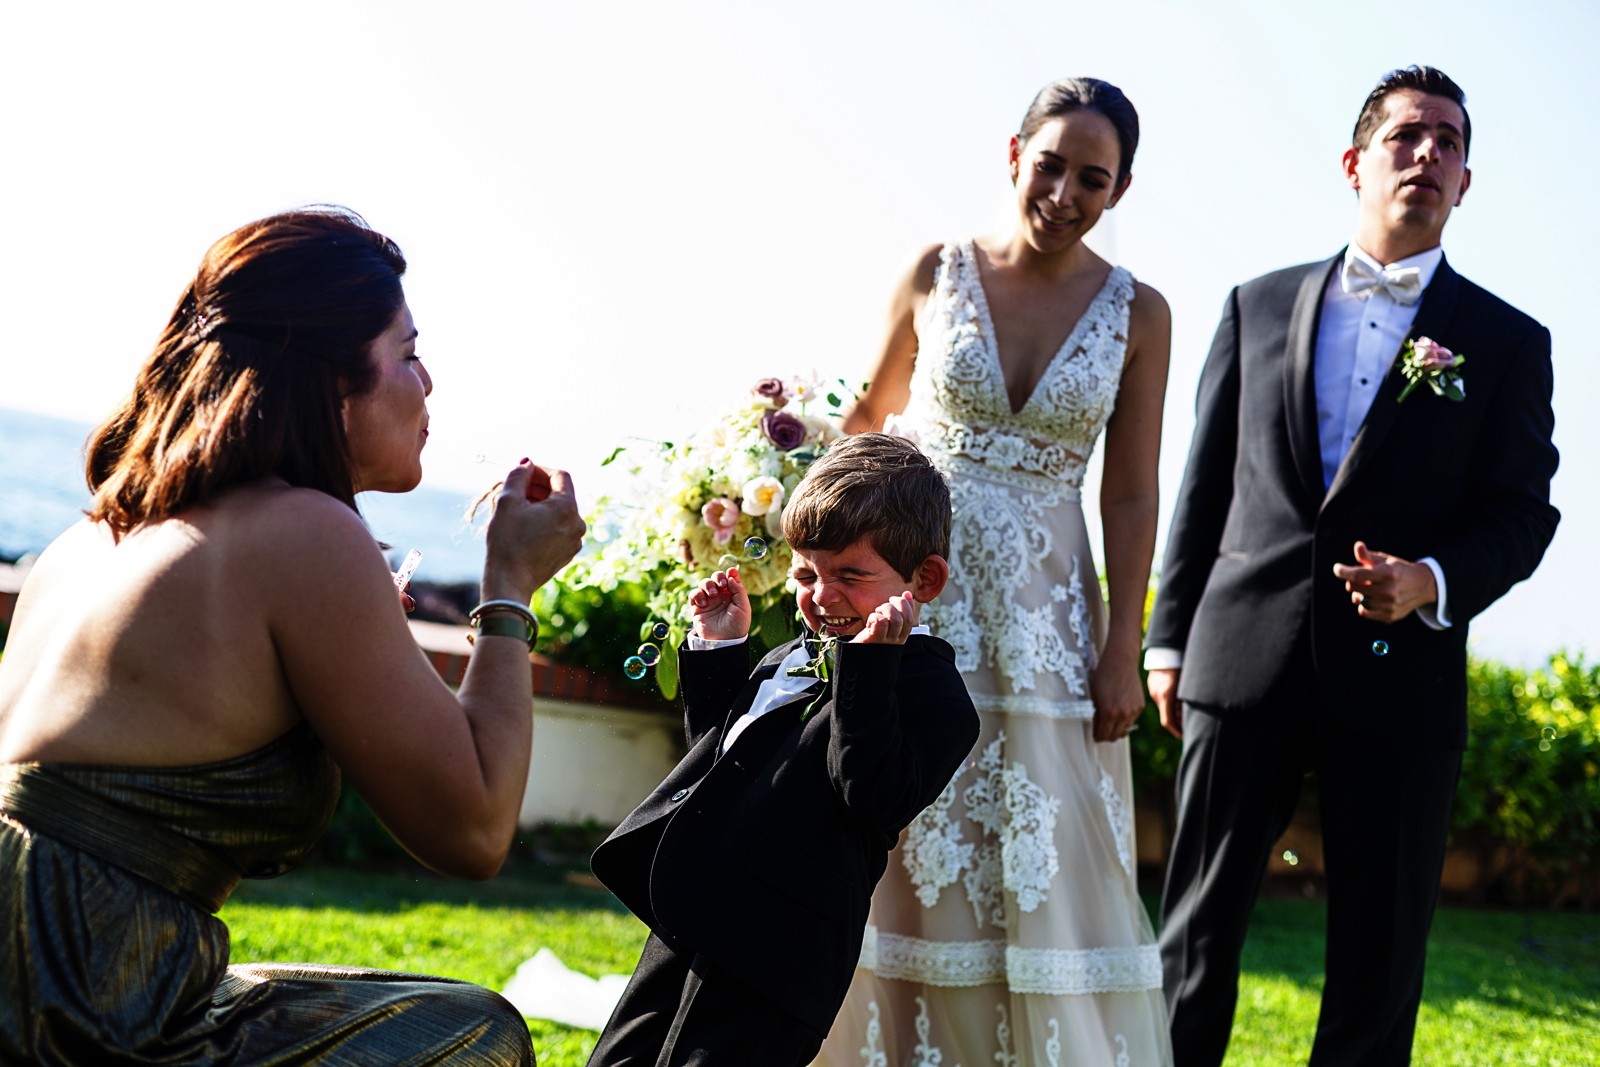 Kid reacts to bubbles being blowed at him in front of the groom and bride